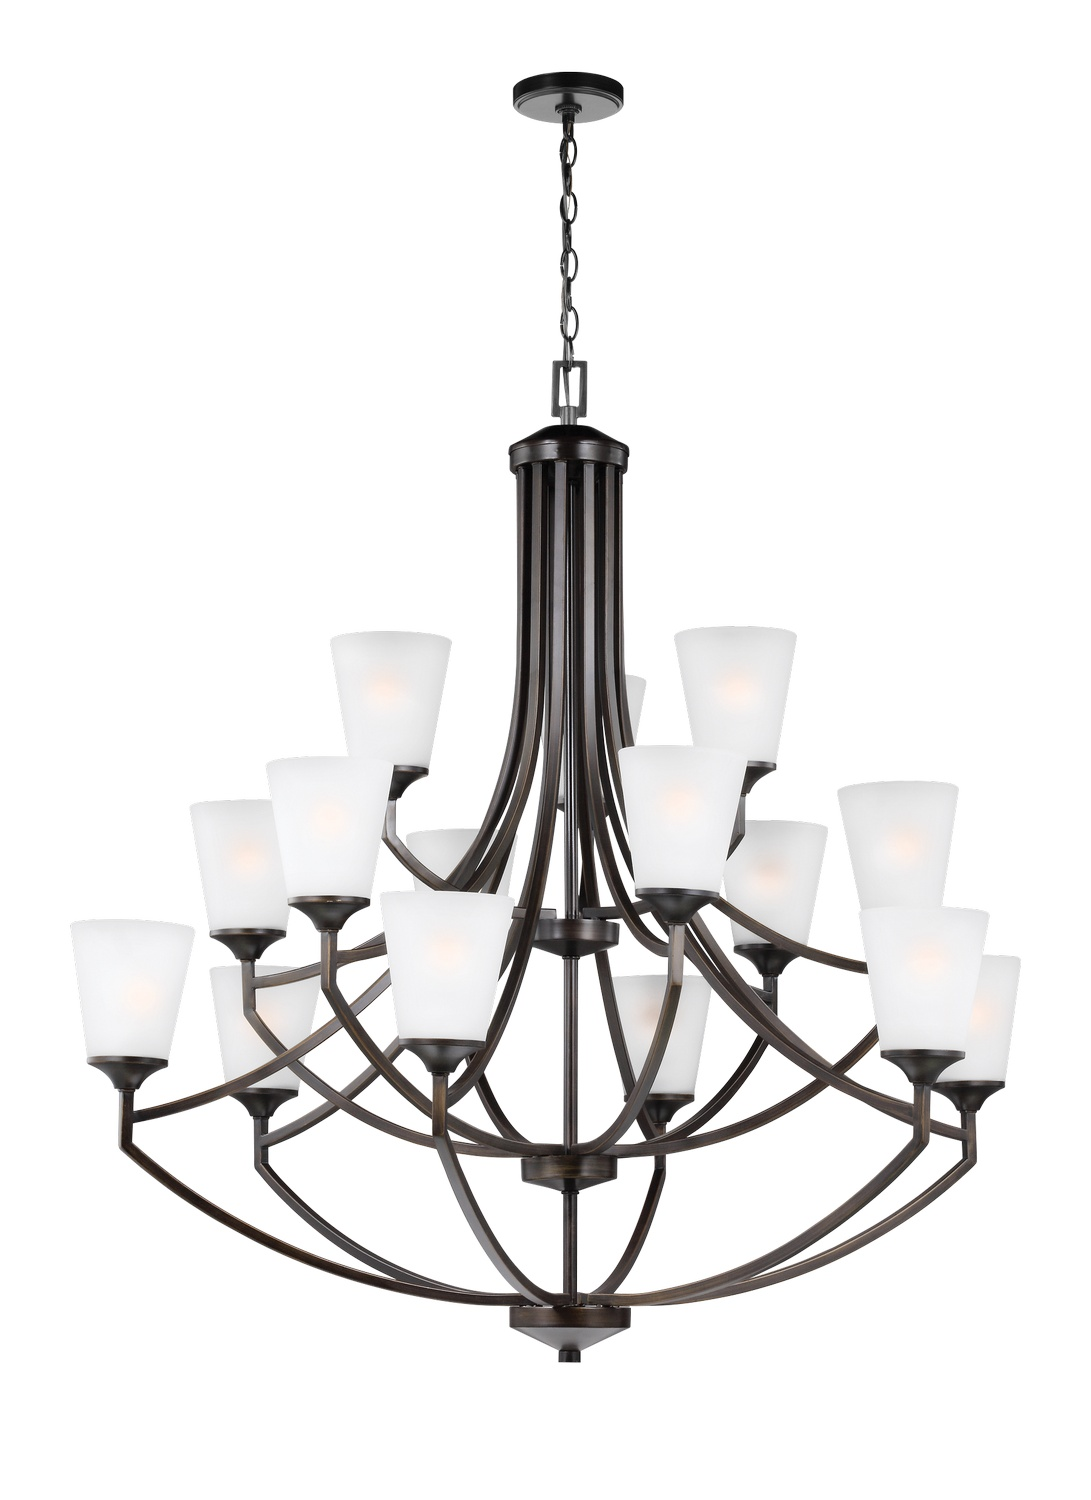 15 Light Chandelier from the Hanford collection by Seagull 3124515 710